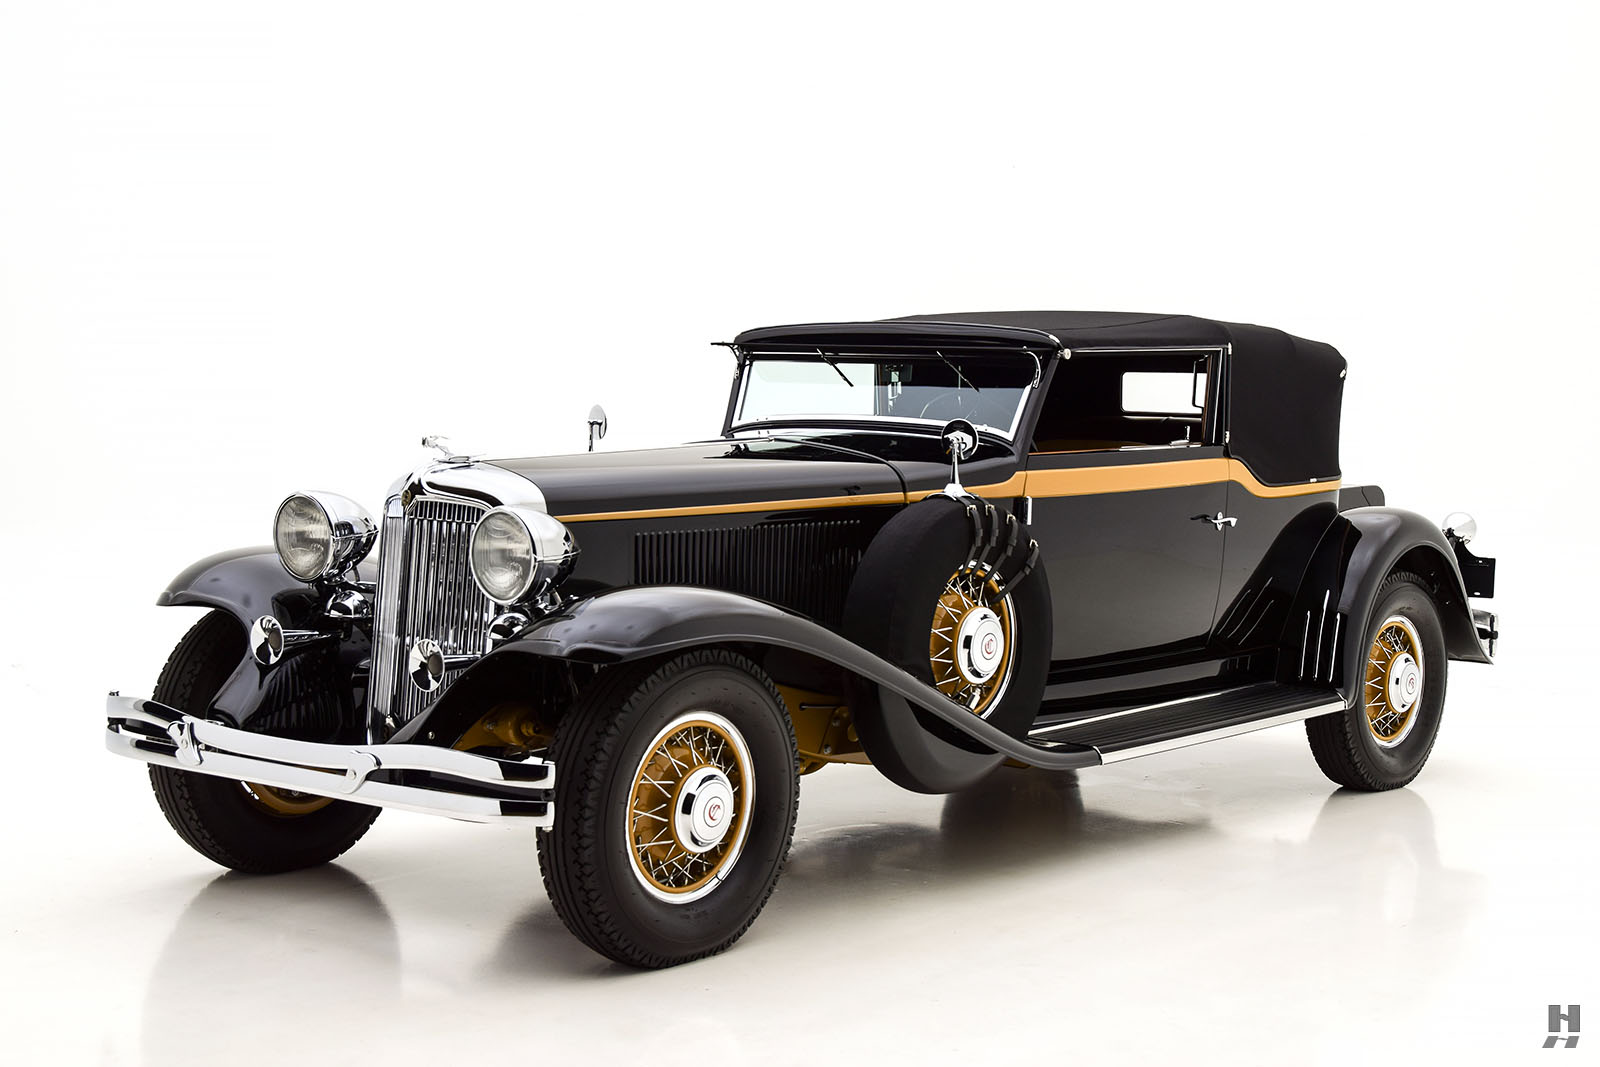 1931 Chrysler CG Imperial Waterhouse Victoria | Hyman Ltd. Classic Cars